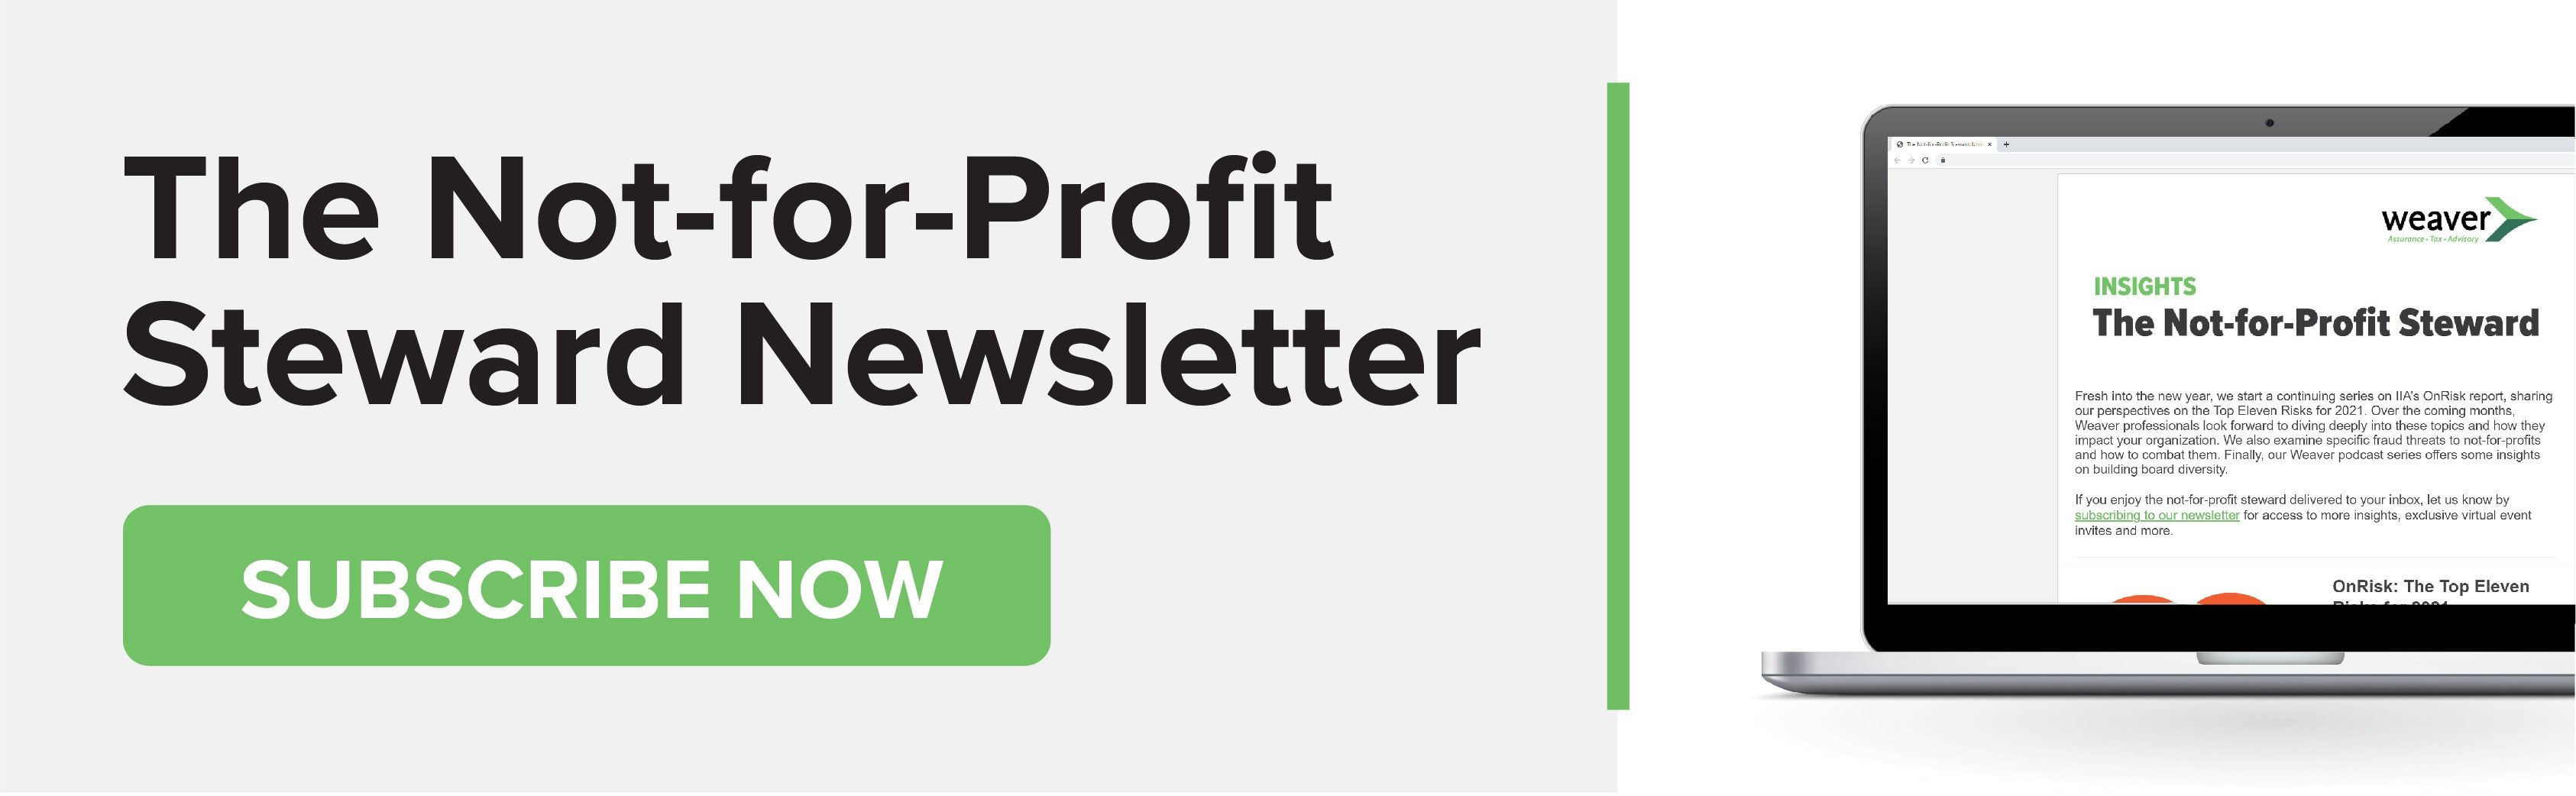 Subscribe now: The Not-for-Profit Steward Newsletter